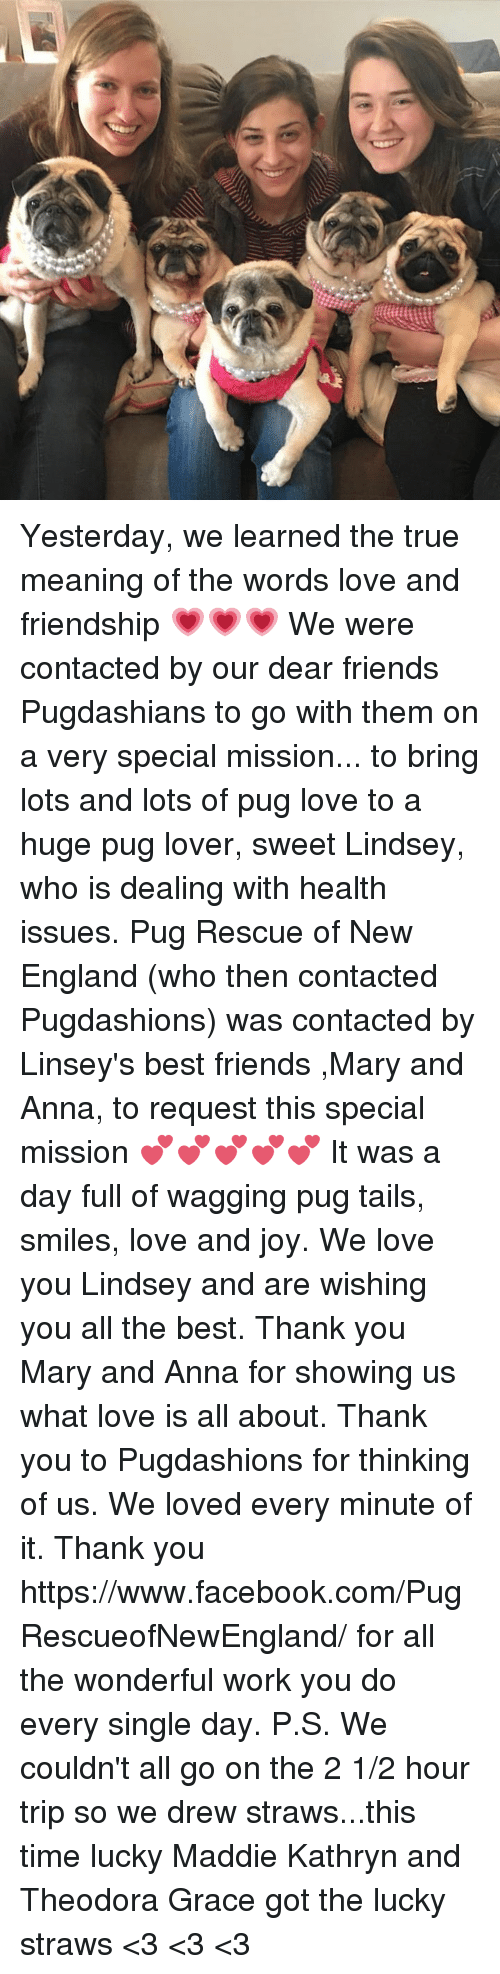 Anna, England, and Facebook: Yesterday, we learned the true meaning of the words love and friendship 💗💗💗 We were contacted by our dear friends Pugdashians to go with them on a very special mission... to bring lots and lots of pug love to a huge pug lover, sweet Lindsey, who is dealing with health issues.  Pug Rescue of New England (who then contacted Pugdashions) was contacted by Linsey's best friends ,Mary and Anna, to request this special mission 💕💕💕💕💕 It was a day full of wagging pug tails, smiles, love and joy. We love you Lindsey and are wishing you all the best. Thank you Mary and Anna for showing us what love is all about. Thank you to Pugdashions for thinking of us. We loved every minute of it. Thank you https://www.facebook.com/PugRescueofNewEngland/  for all the wonderful work you do every single day.  P.S. We couldn't all go on the 2 1/2 hour trip so we drew straws...this time lucky Maddie Kathryn and Theodora Grace got the lucky straws <3 <3 <3